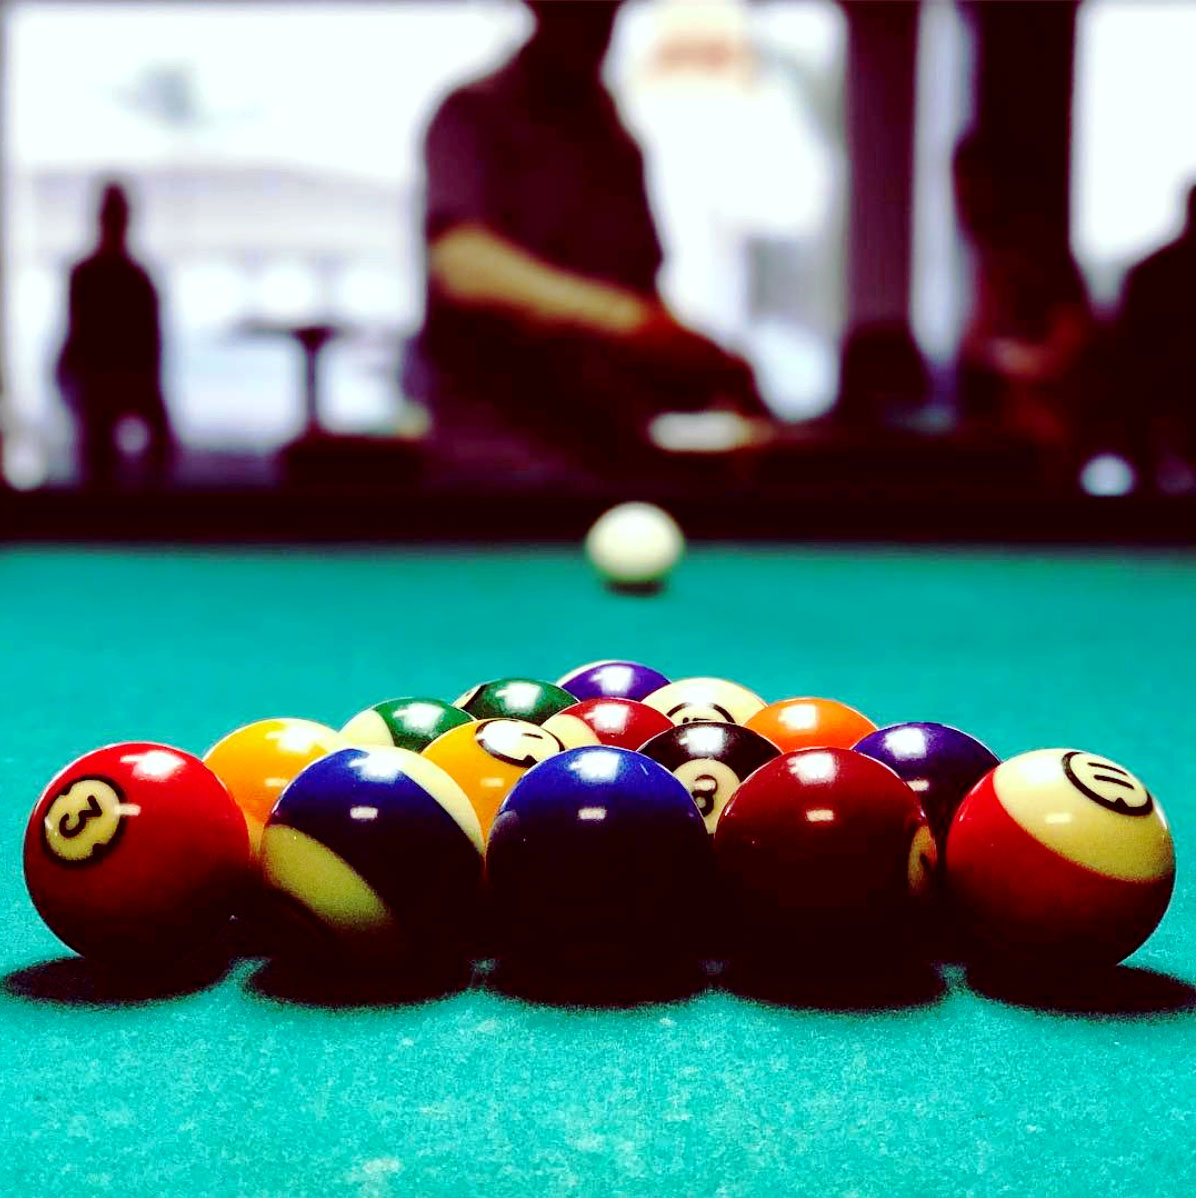 Pool player gets ready to play pool.